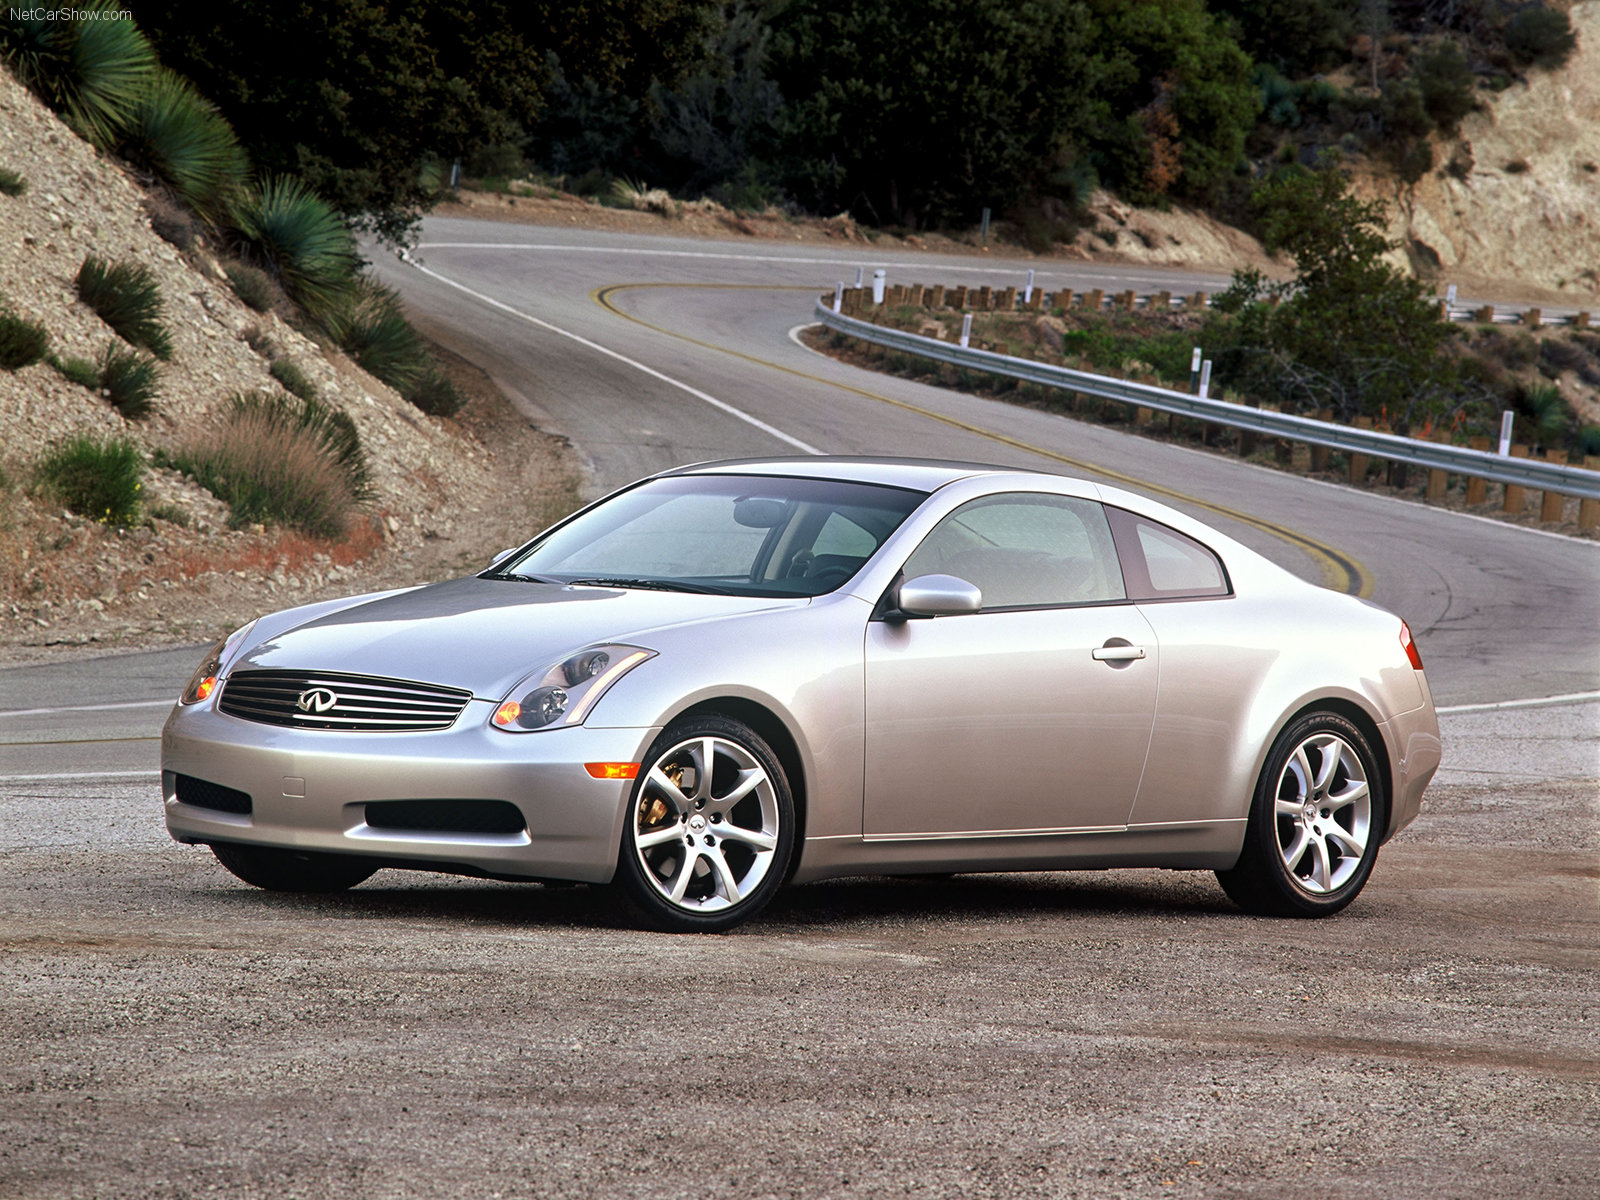 2003 Infiniti G35 Coupe >> My perfect Infiniti G35. 3DTuning - probably the best car configurator!